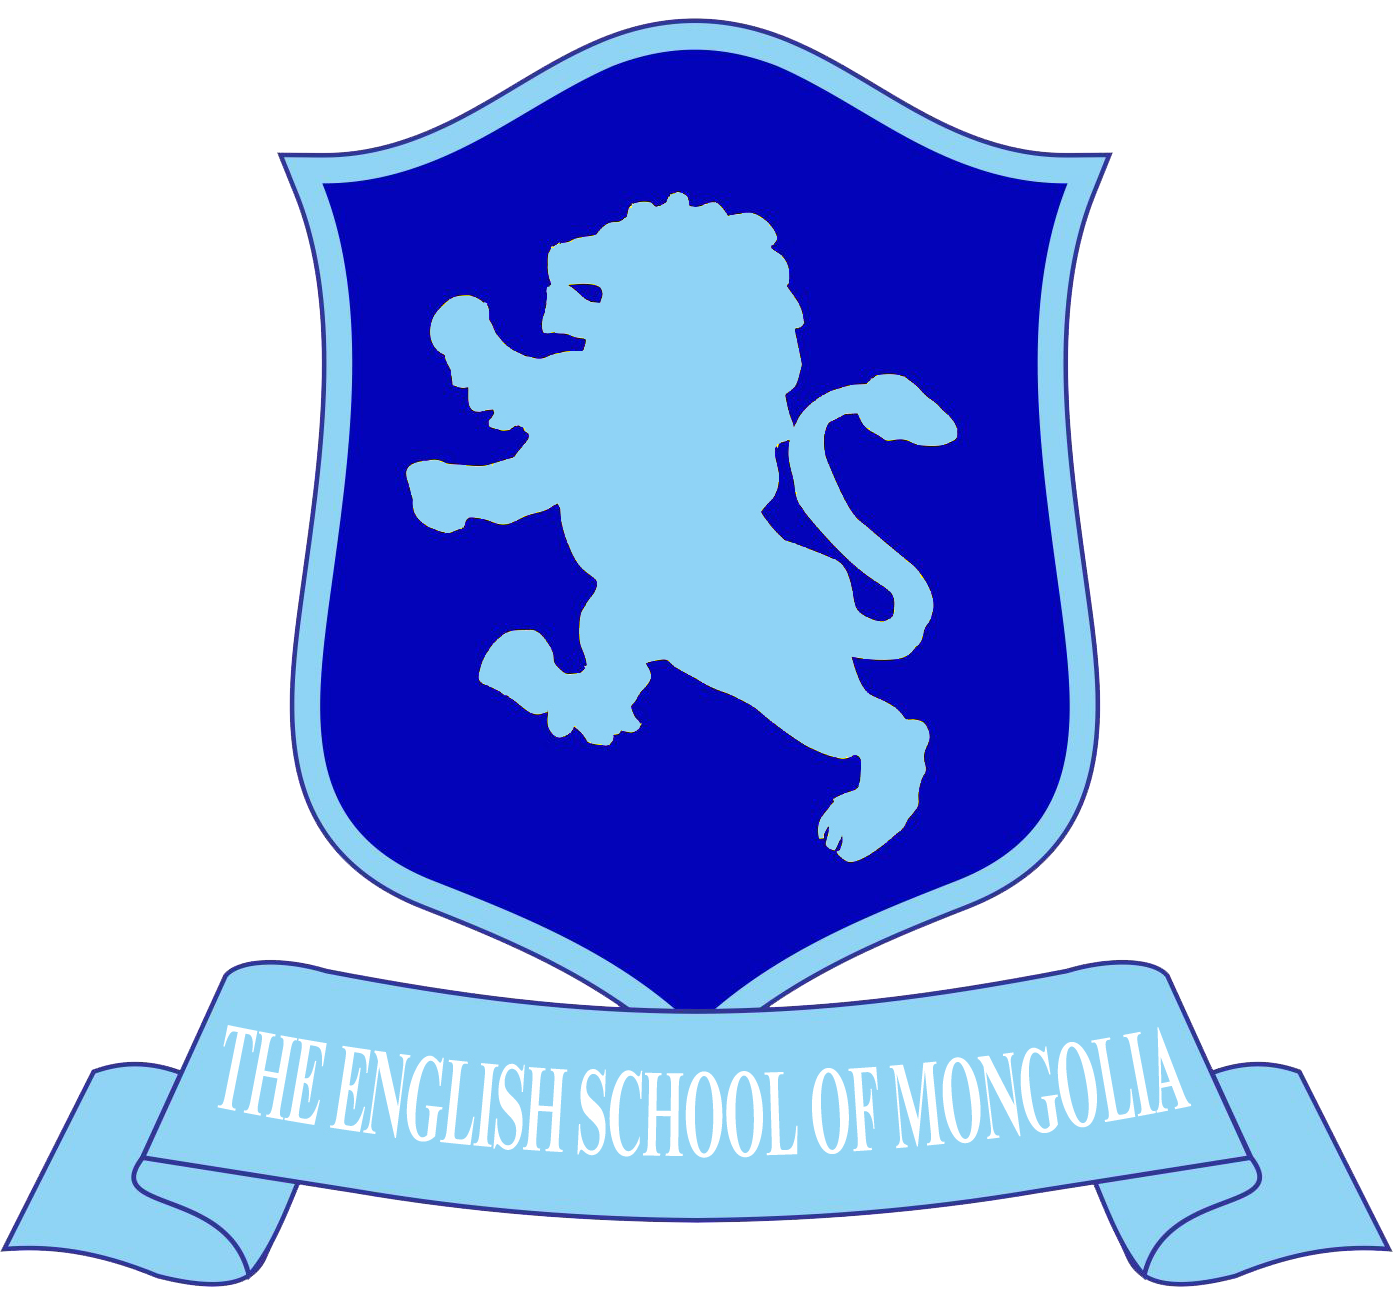 The English School of Mongolia – INTERNATIONAL SCHOOL